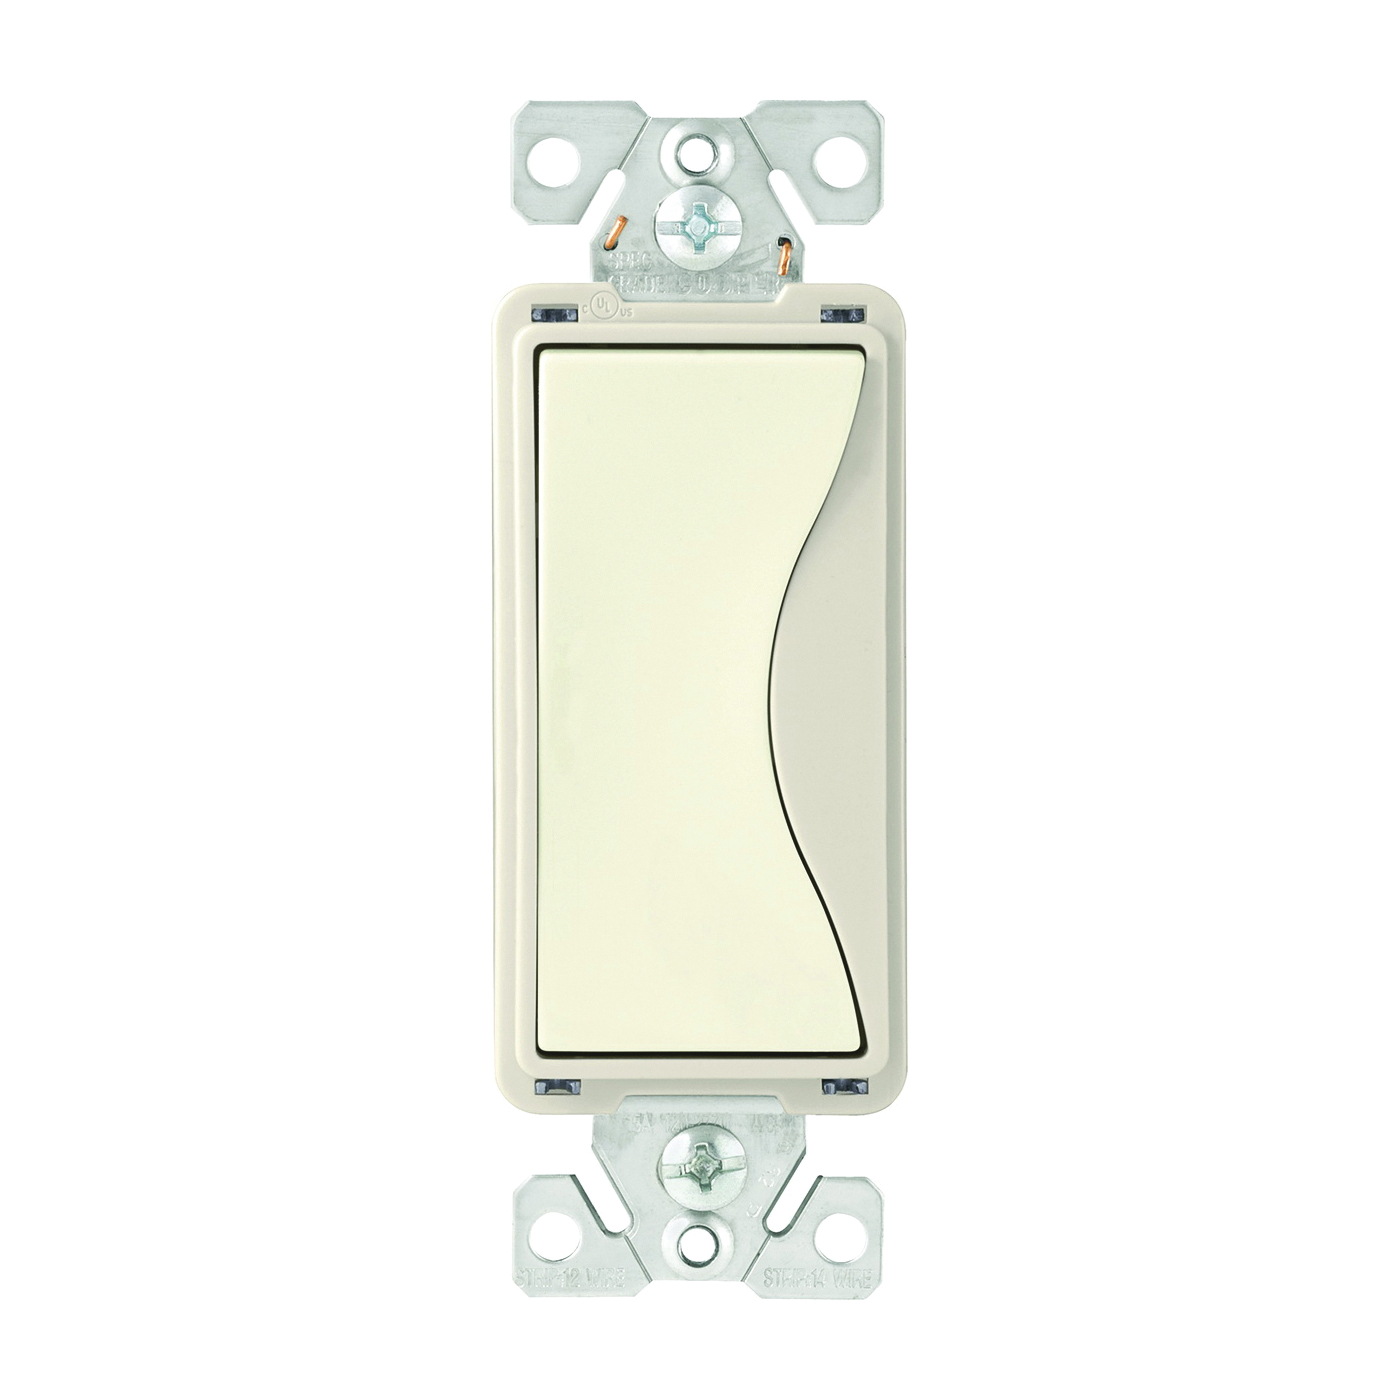 Picture of Eaton Wiring Devices ASPIRE 9504DS Rocker Switch, 15 A, 120/277 V, 4-Way, Push-In Terminal, Desert Sand